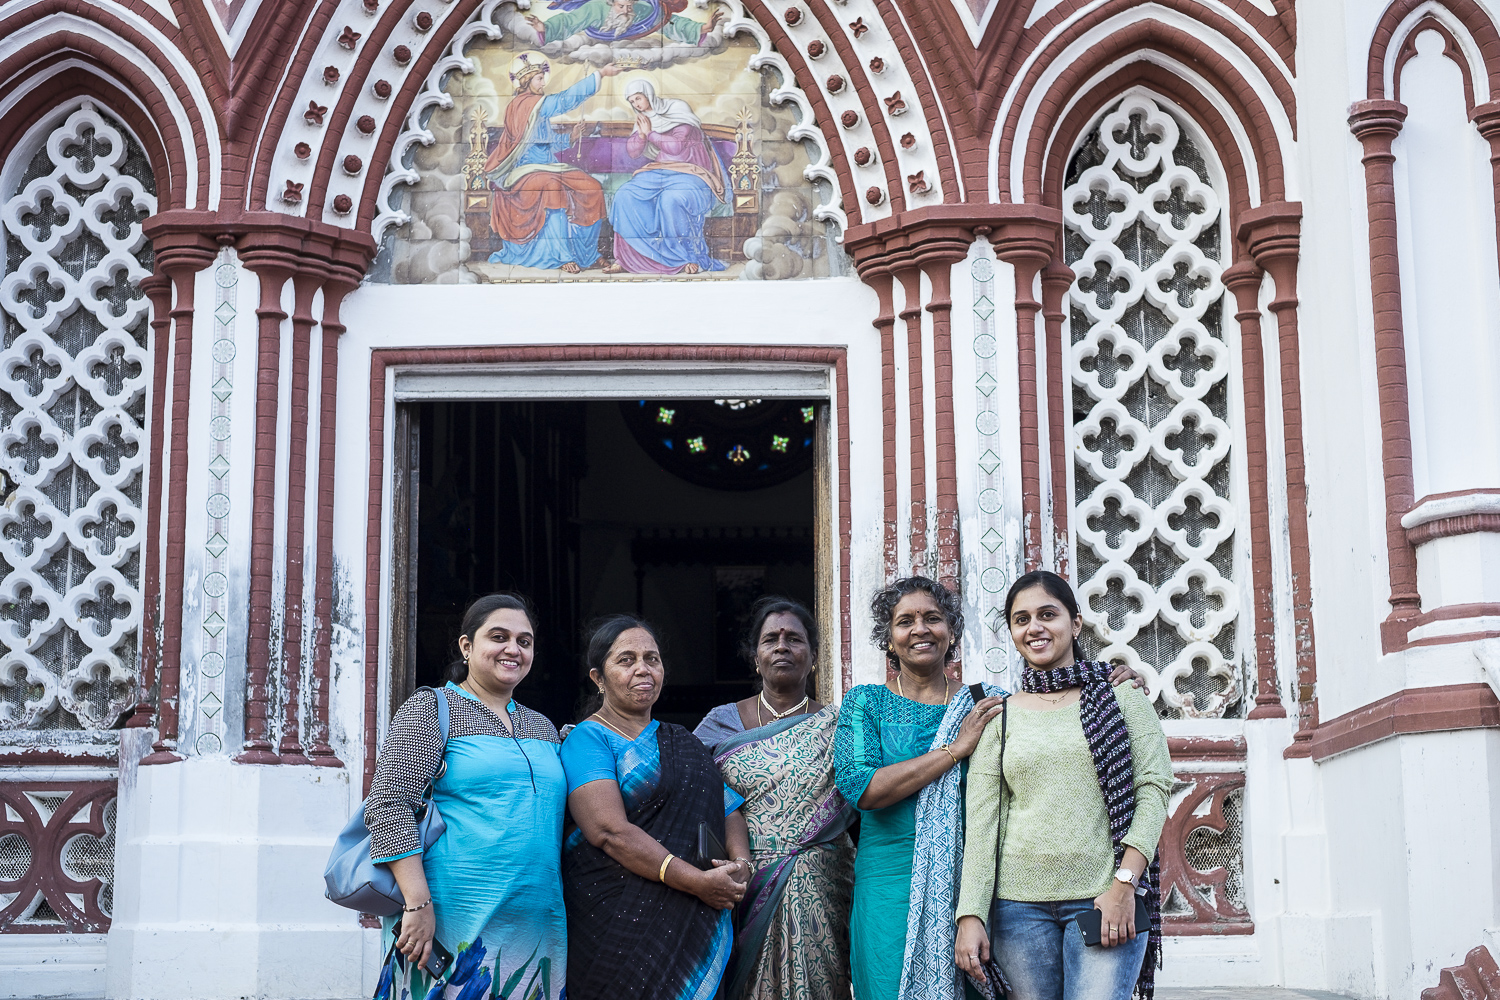 My mother Geetha (second from the right) together with her sister Krishna (middle), her cousin Sheila (second from the left), and Sheila's two daughters Tanya (far left) and Nancy (far right).